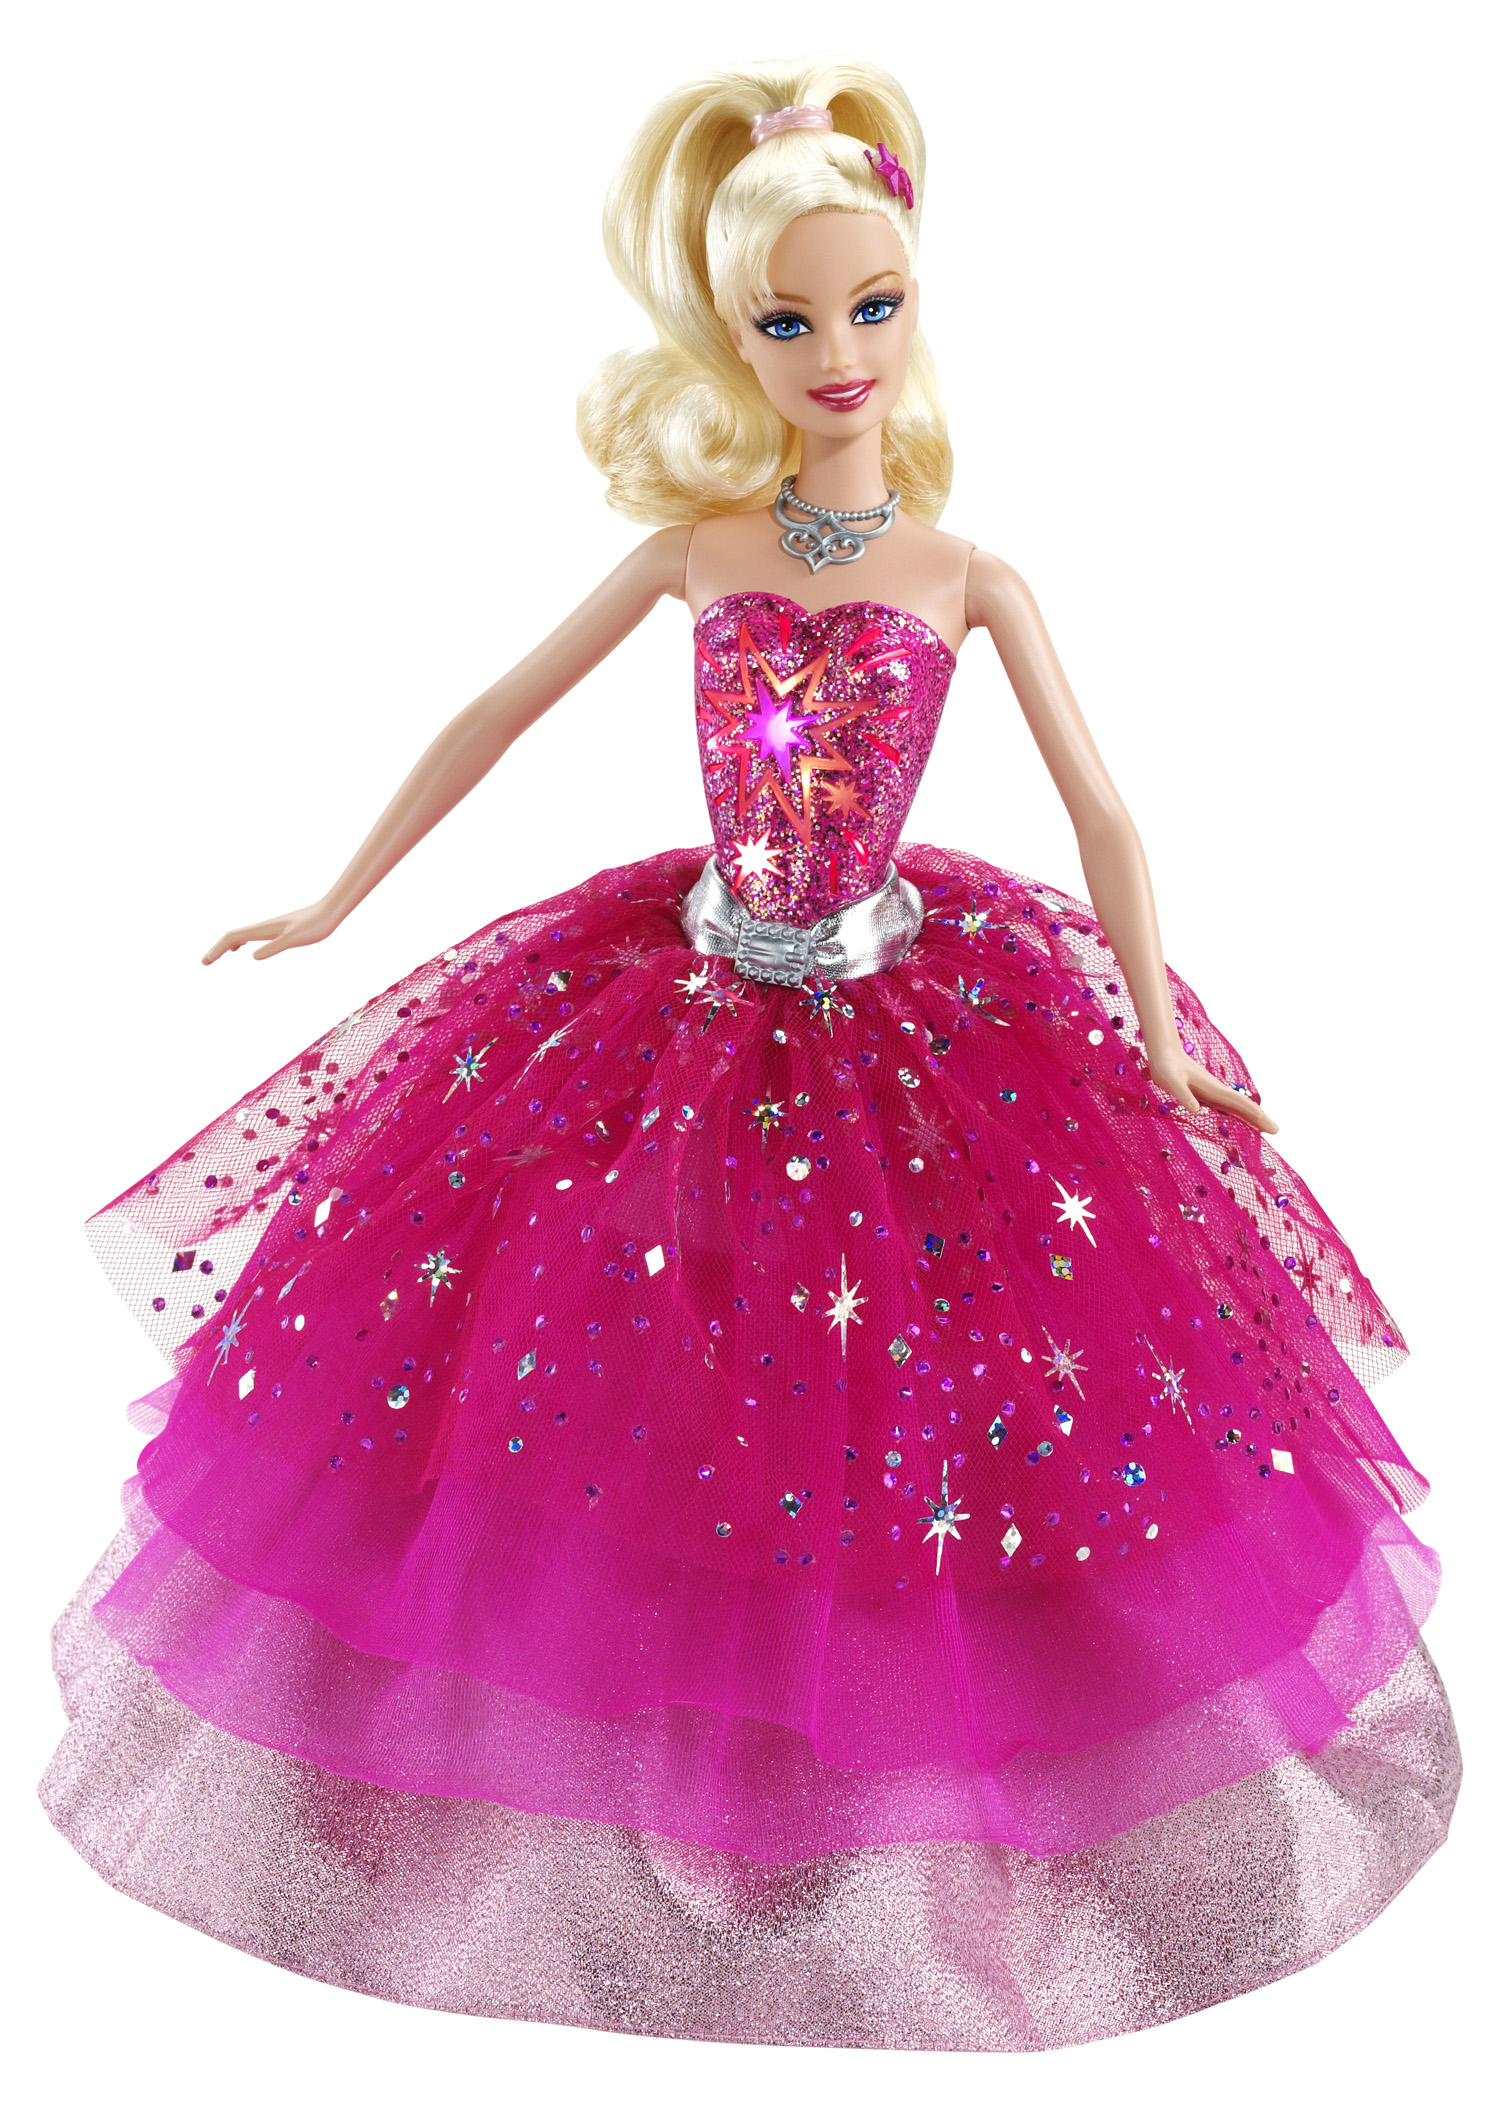 Barbie a fashion fairytale barbie doll